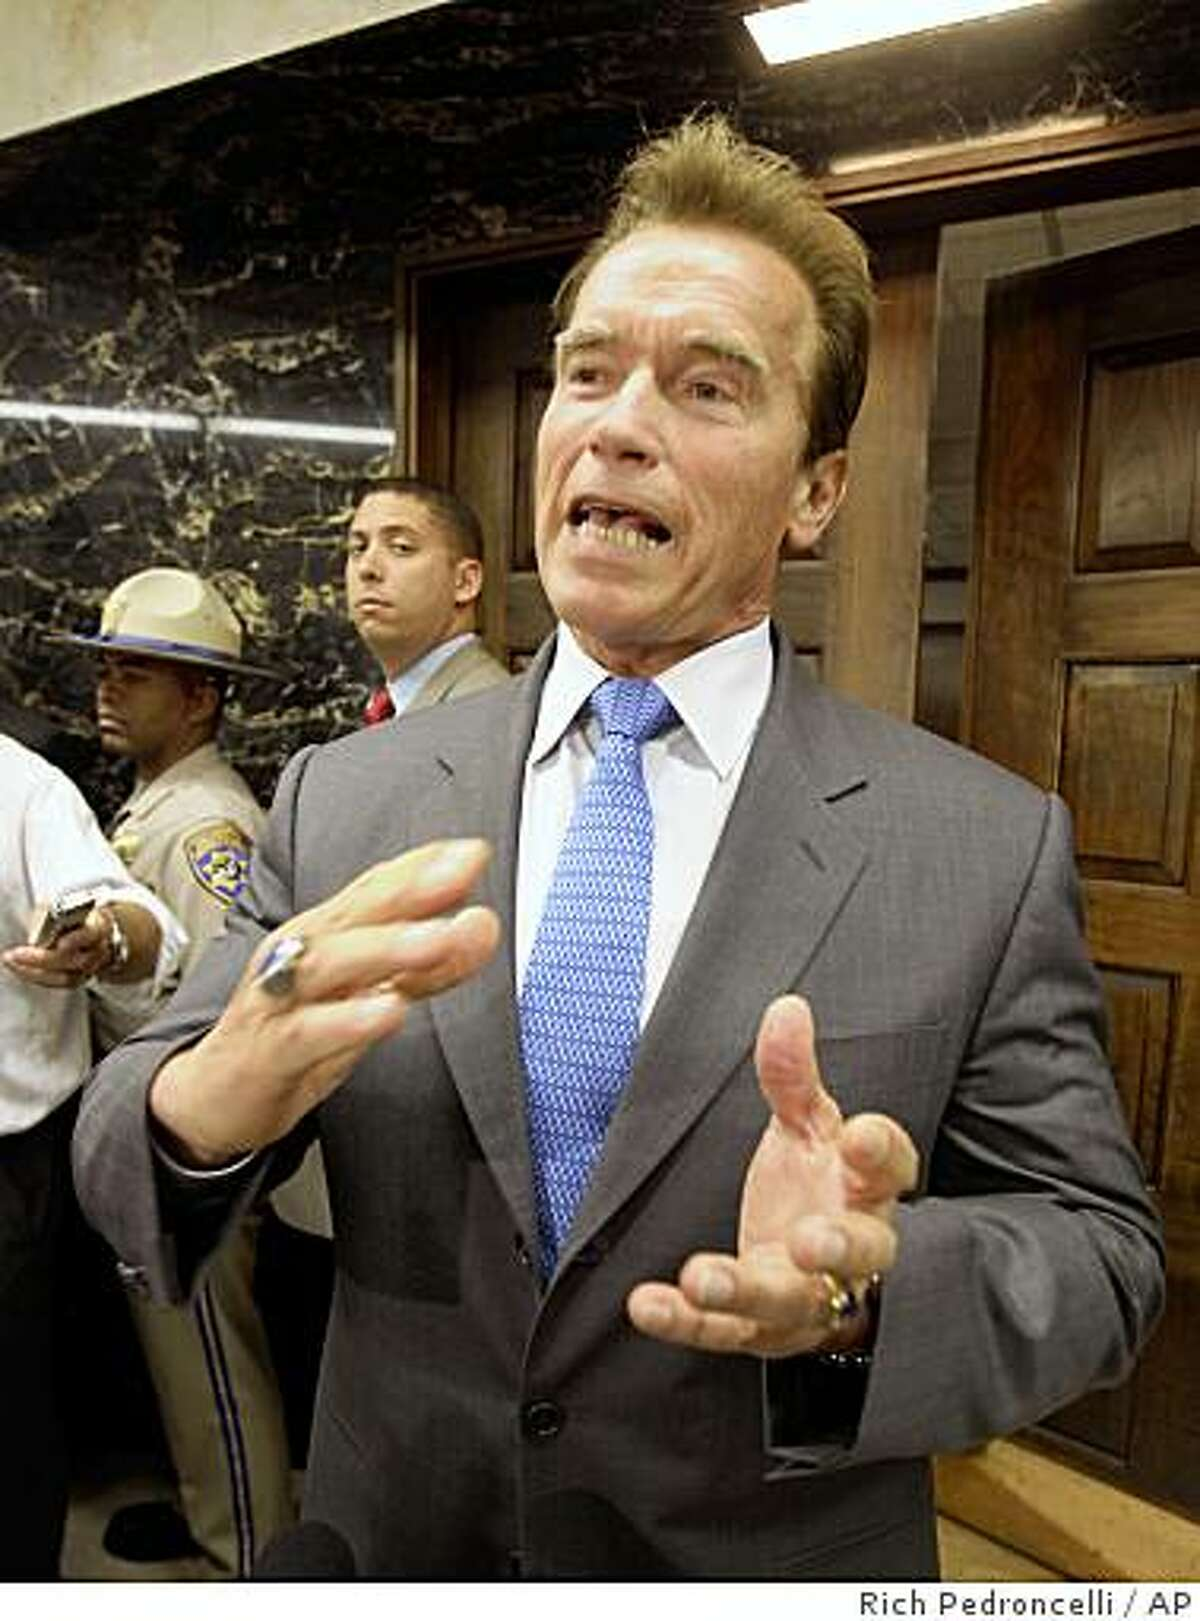 Gov. Arnold Schwarzenegger said that he would veto any budget bill that includes new taxes beyond what he has already proposed, while talking to reporters about the state budget outside his Capitol office in Sacramento, Calif., Wednesday, June 17, 2009.(AP Photo/Rich Pedroncelli)